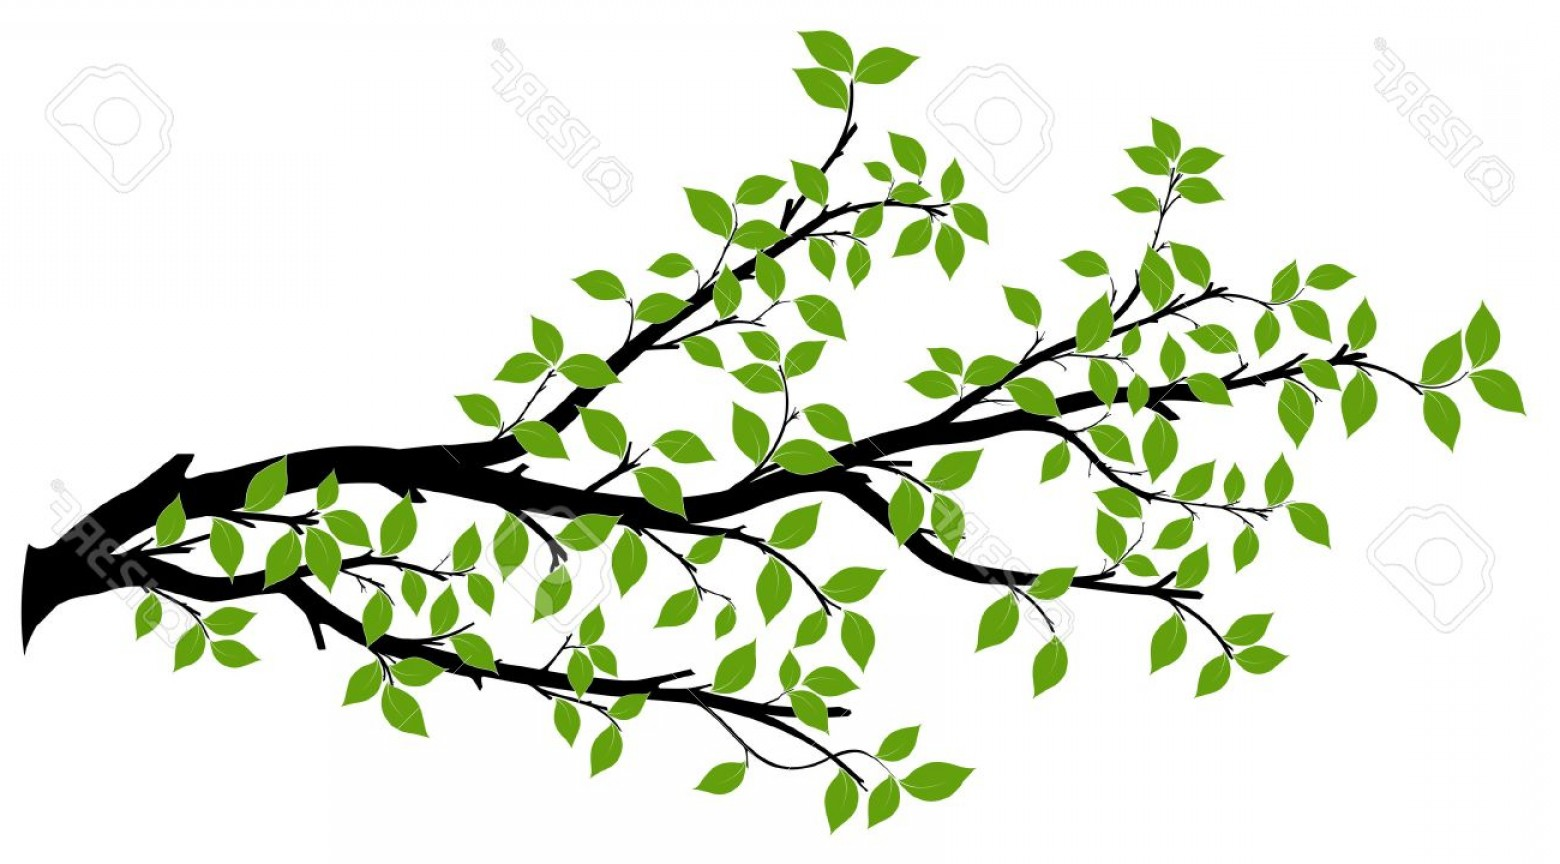 1560x864 Photostock Vector Tree Branch With Green Leaves Over White